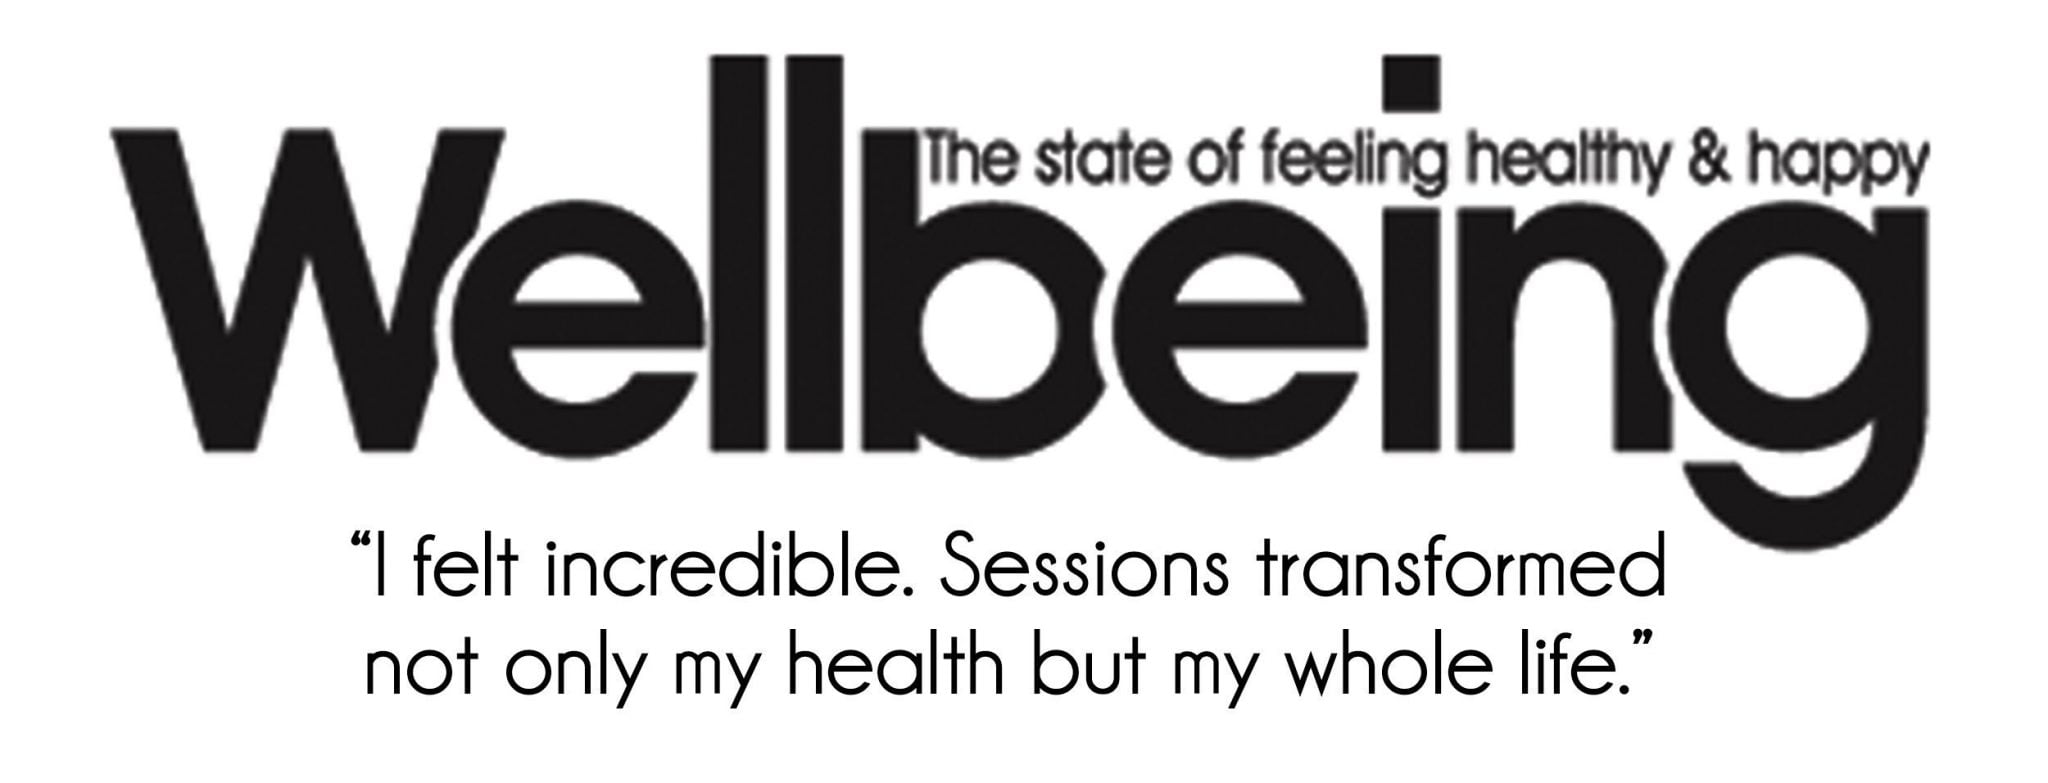 Wellbeing_Magazine